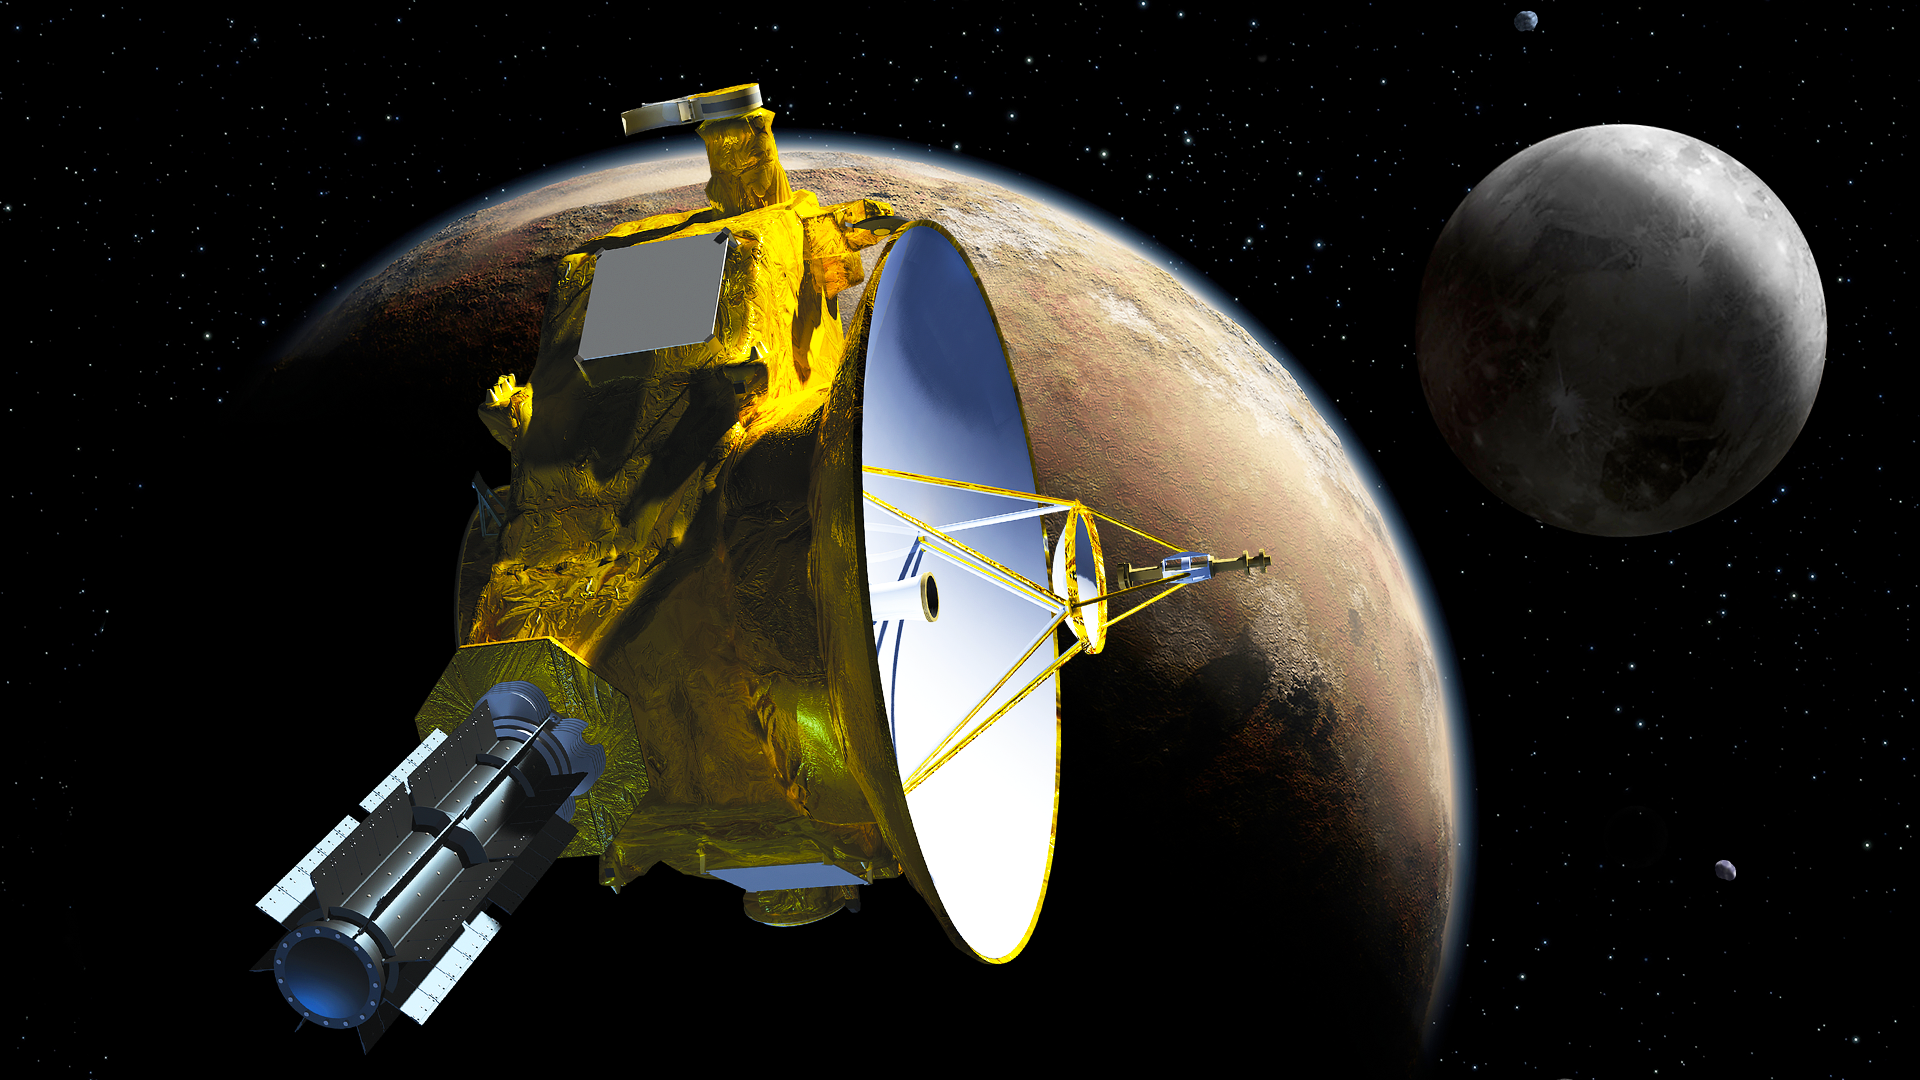 newest space probe - HD1820×1024